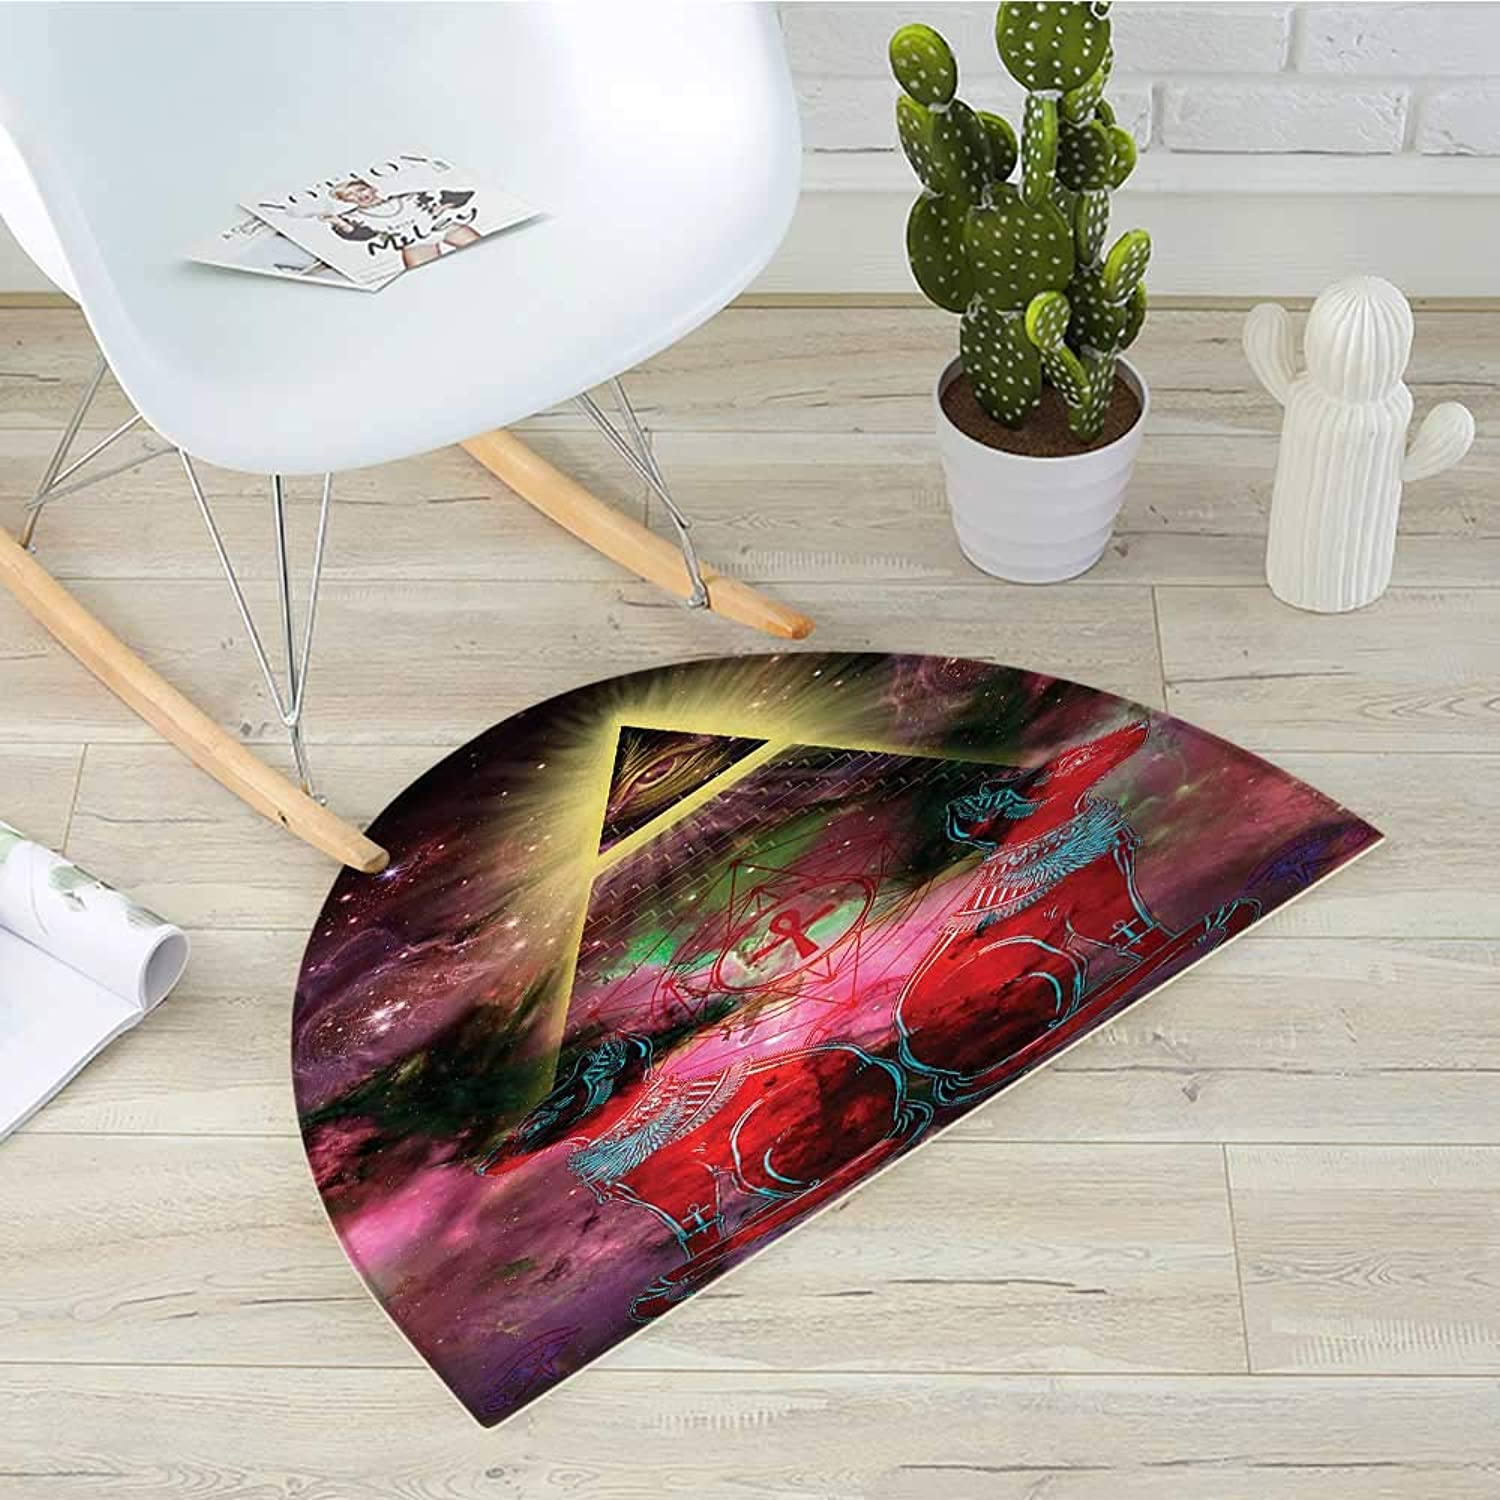 Astronomy Semicircular CushionSacred Ancient Egyptian Pyramids with Occult Sacred Eye and Bastet Artwork Entry Door Mat H 51.1  xD 76.7  Plum and Red